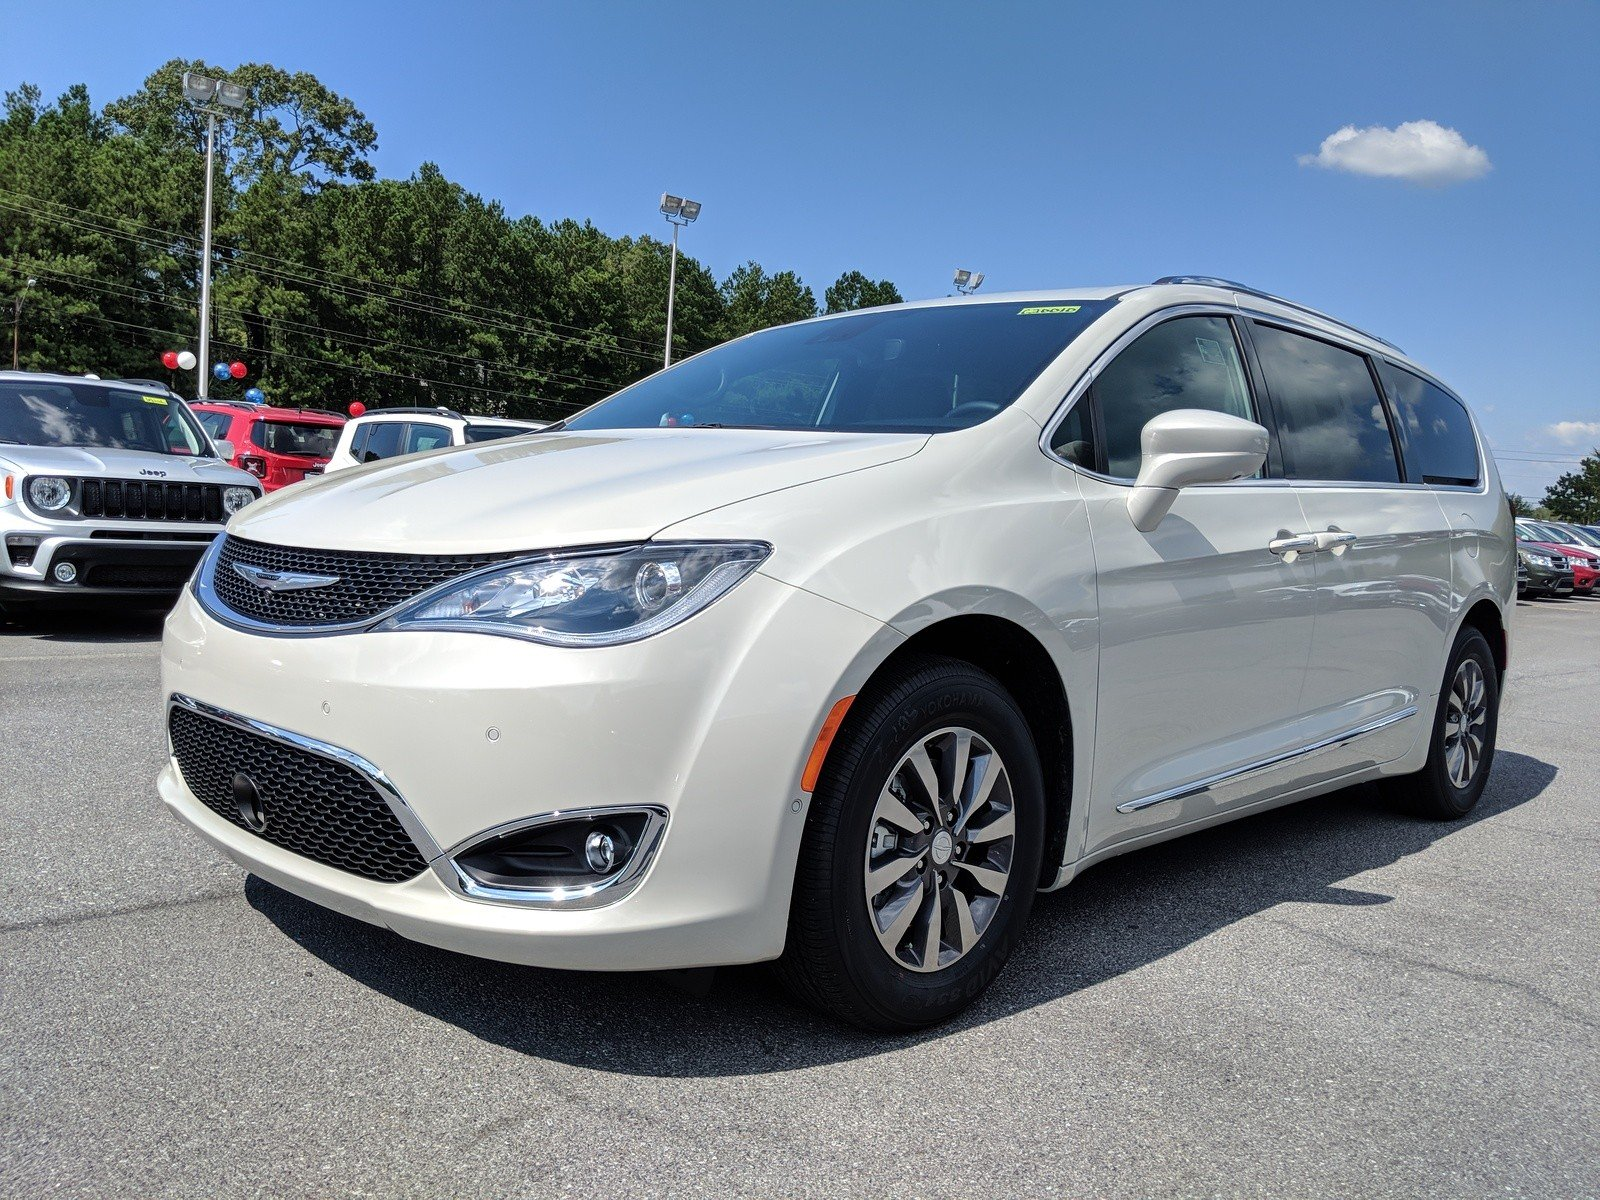 New 2020 CHRYSLER Pacifica Touring L Plus 35th Anniversary